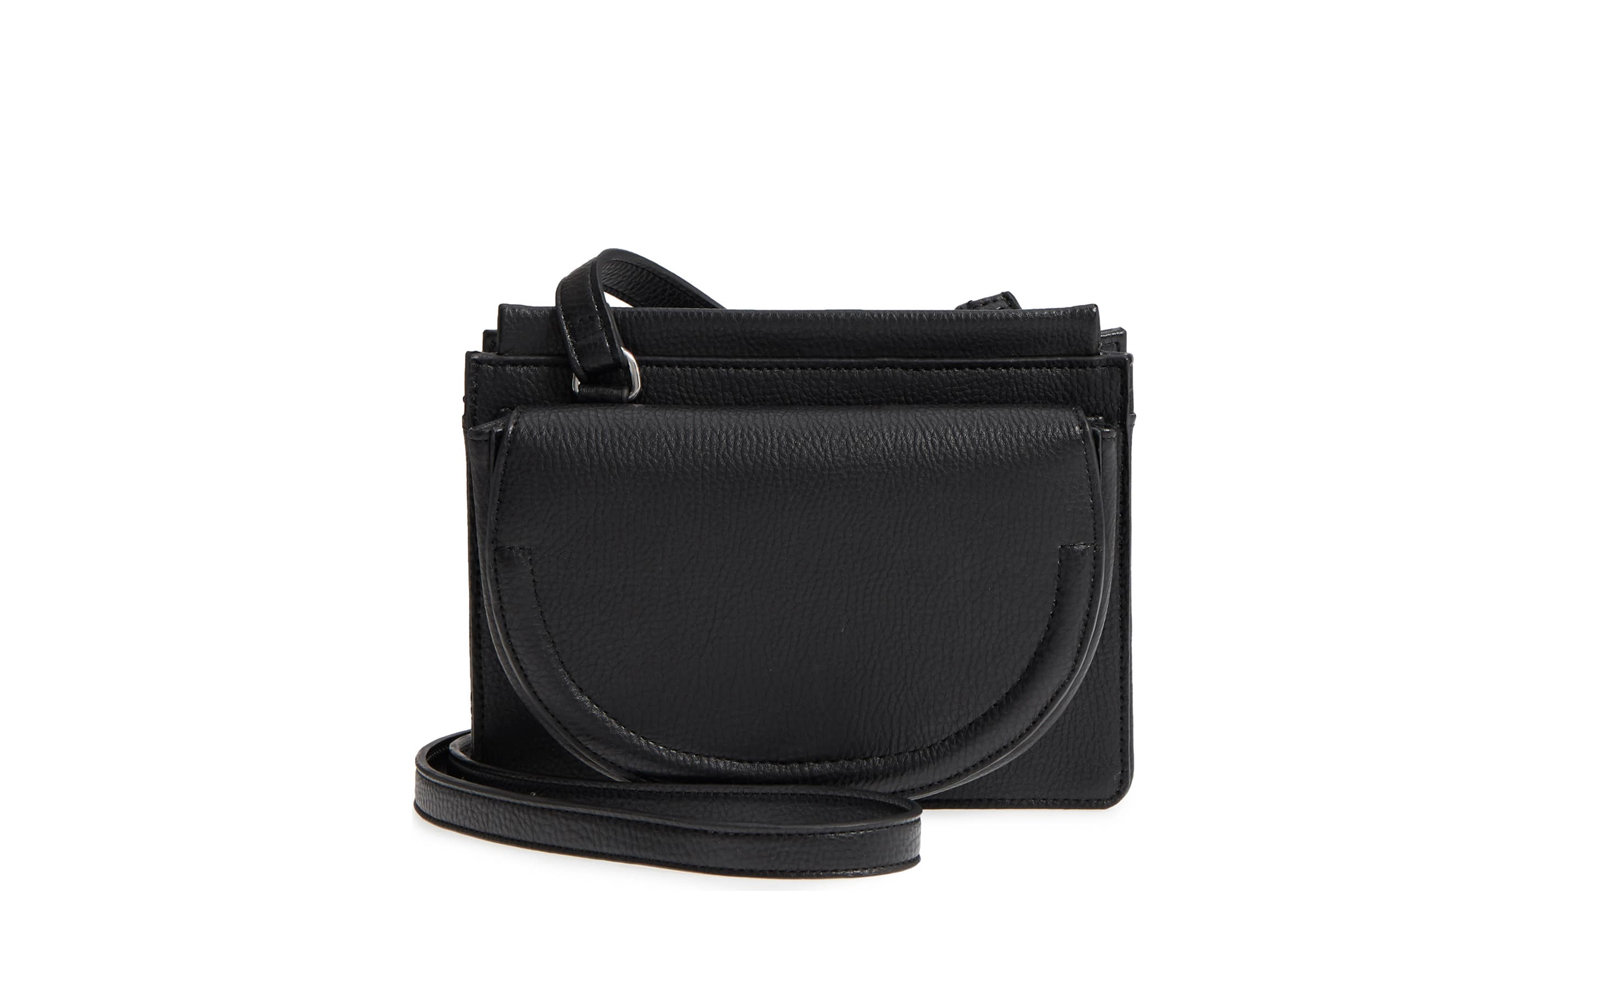 Danielle Nicole 'Jaxon' Faux Leather Crossbody Bag